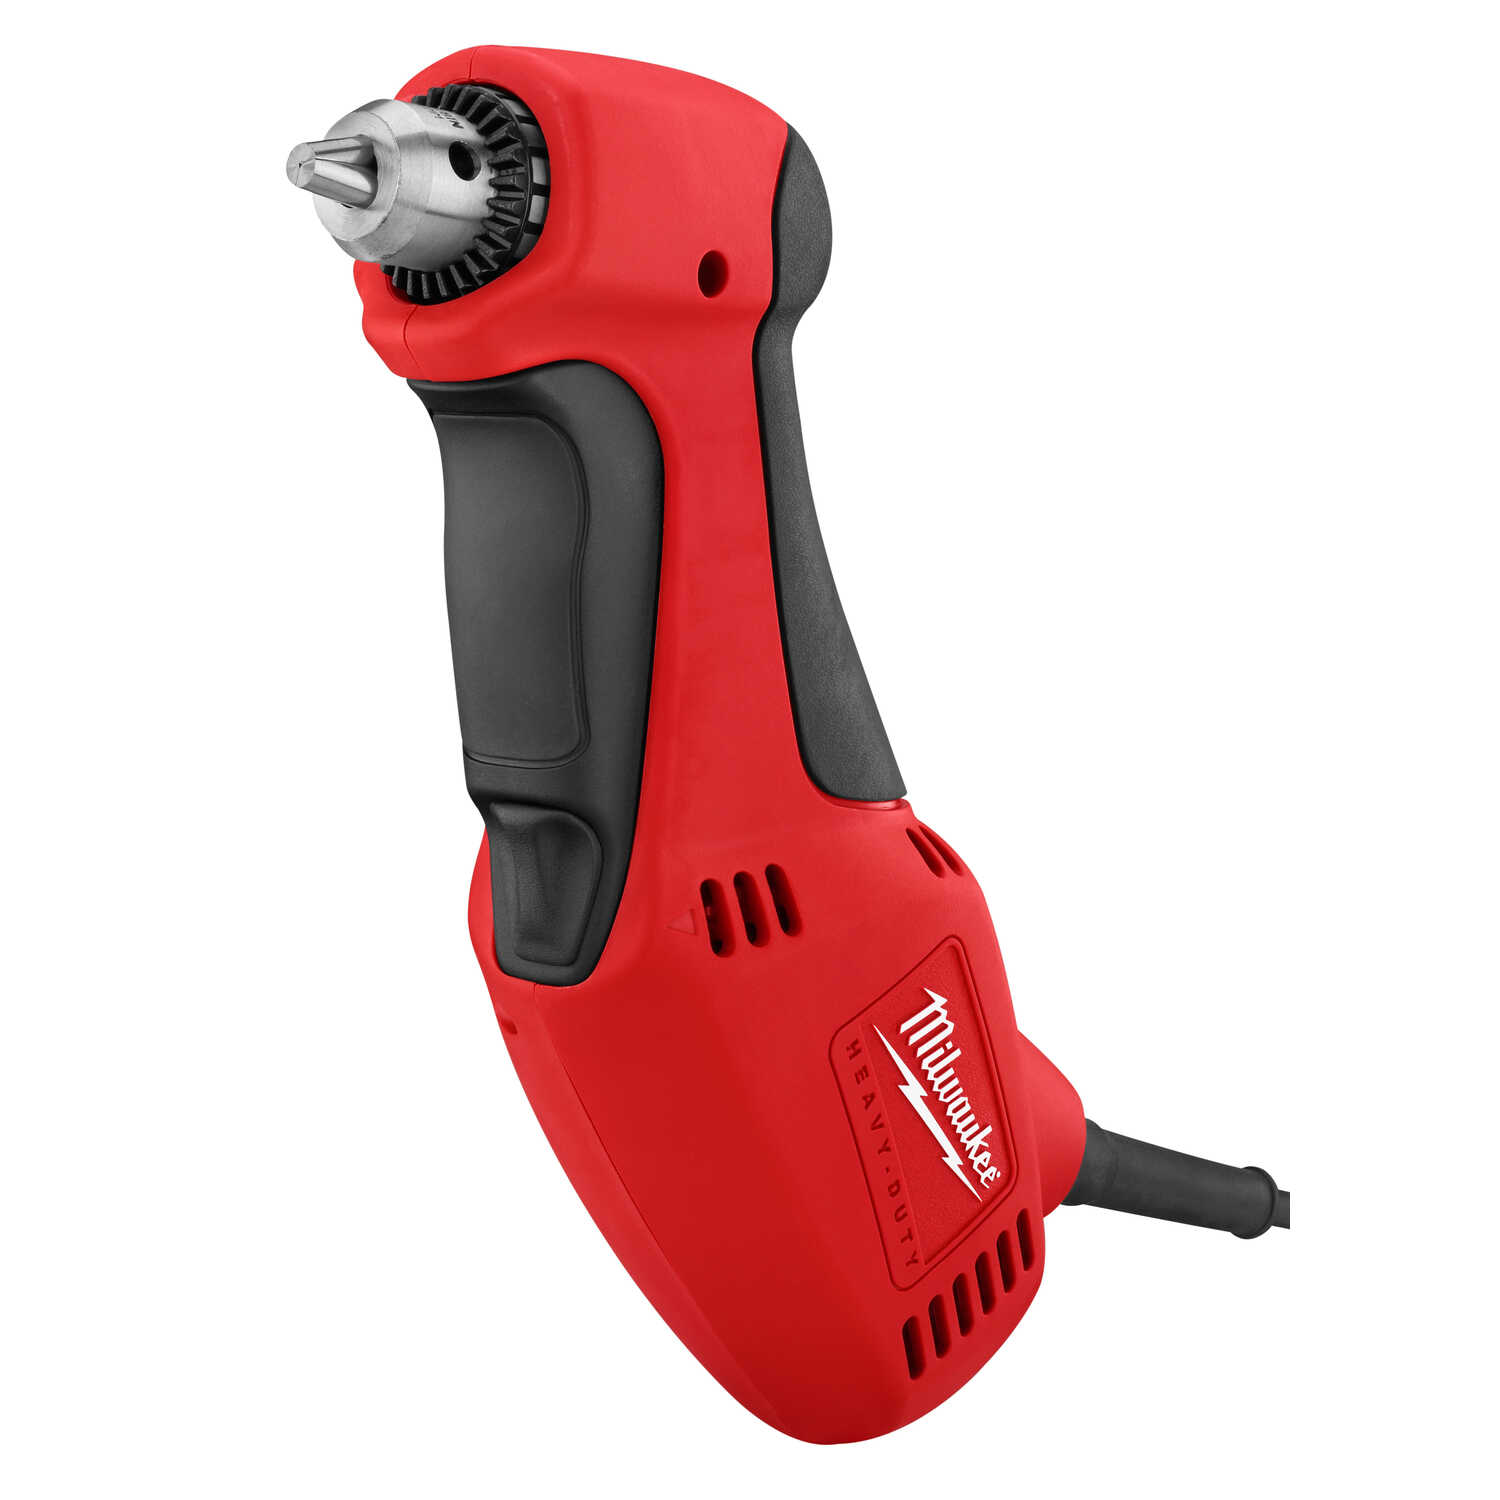 Milwaukee  3/8 in. Keyed  Close Quarters  Corded Angle Drill  3.5 amps 1300 rpm